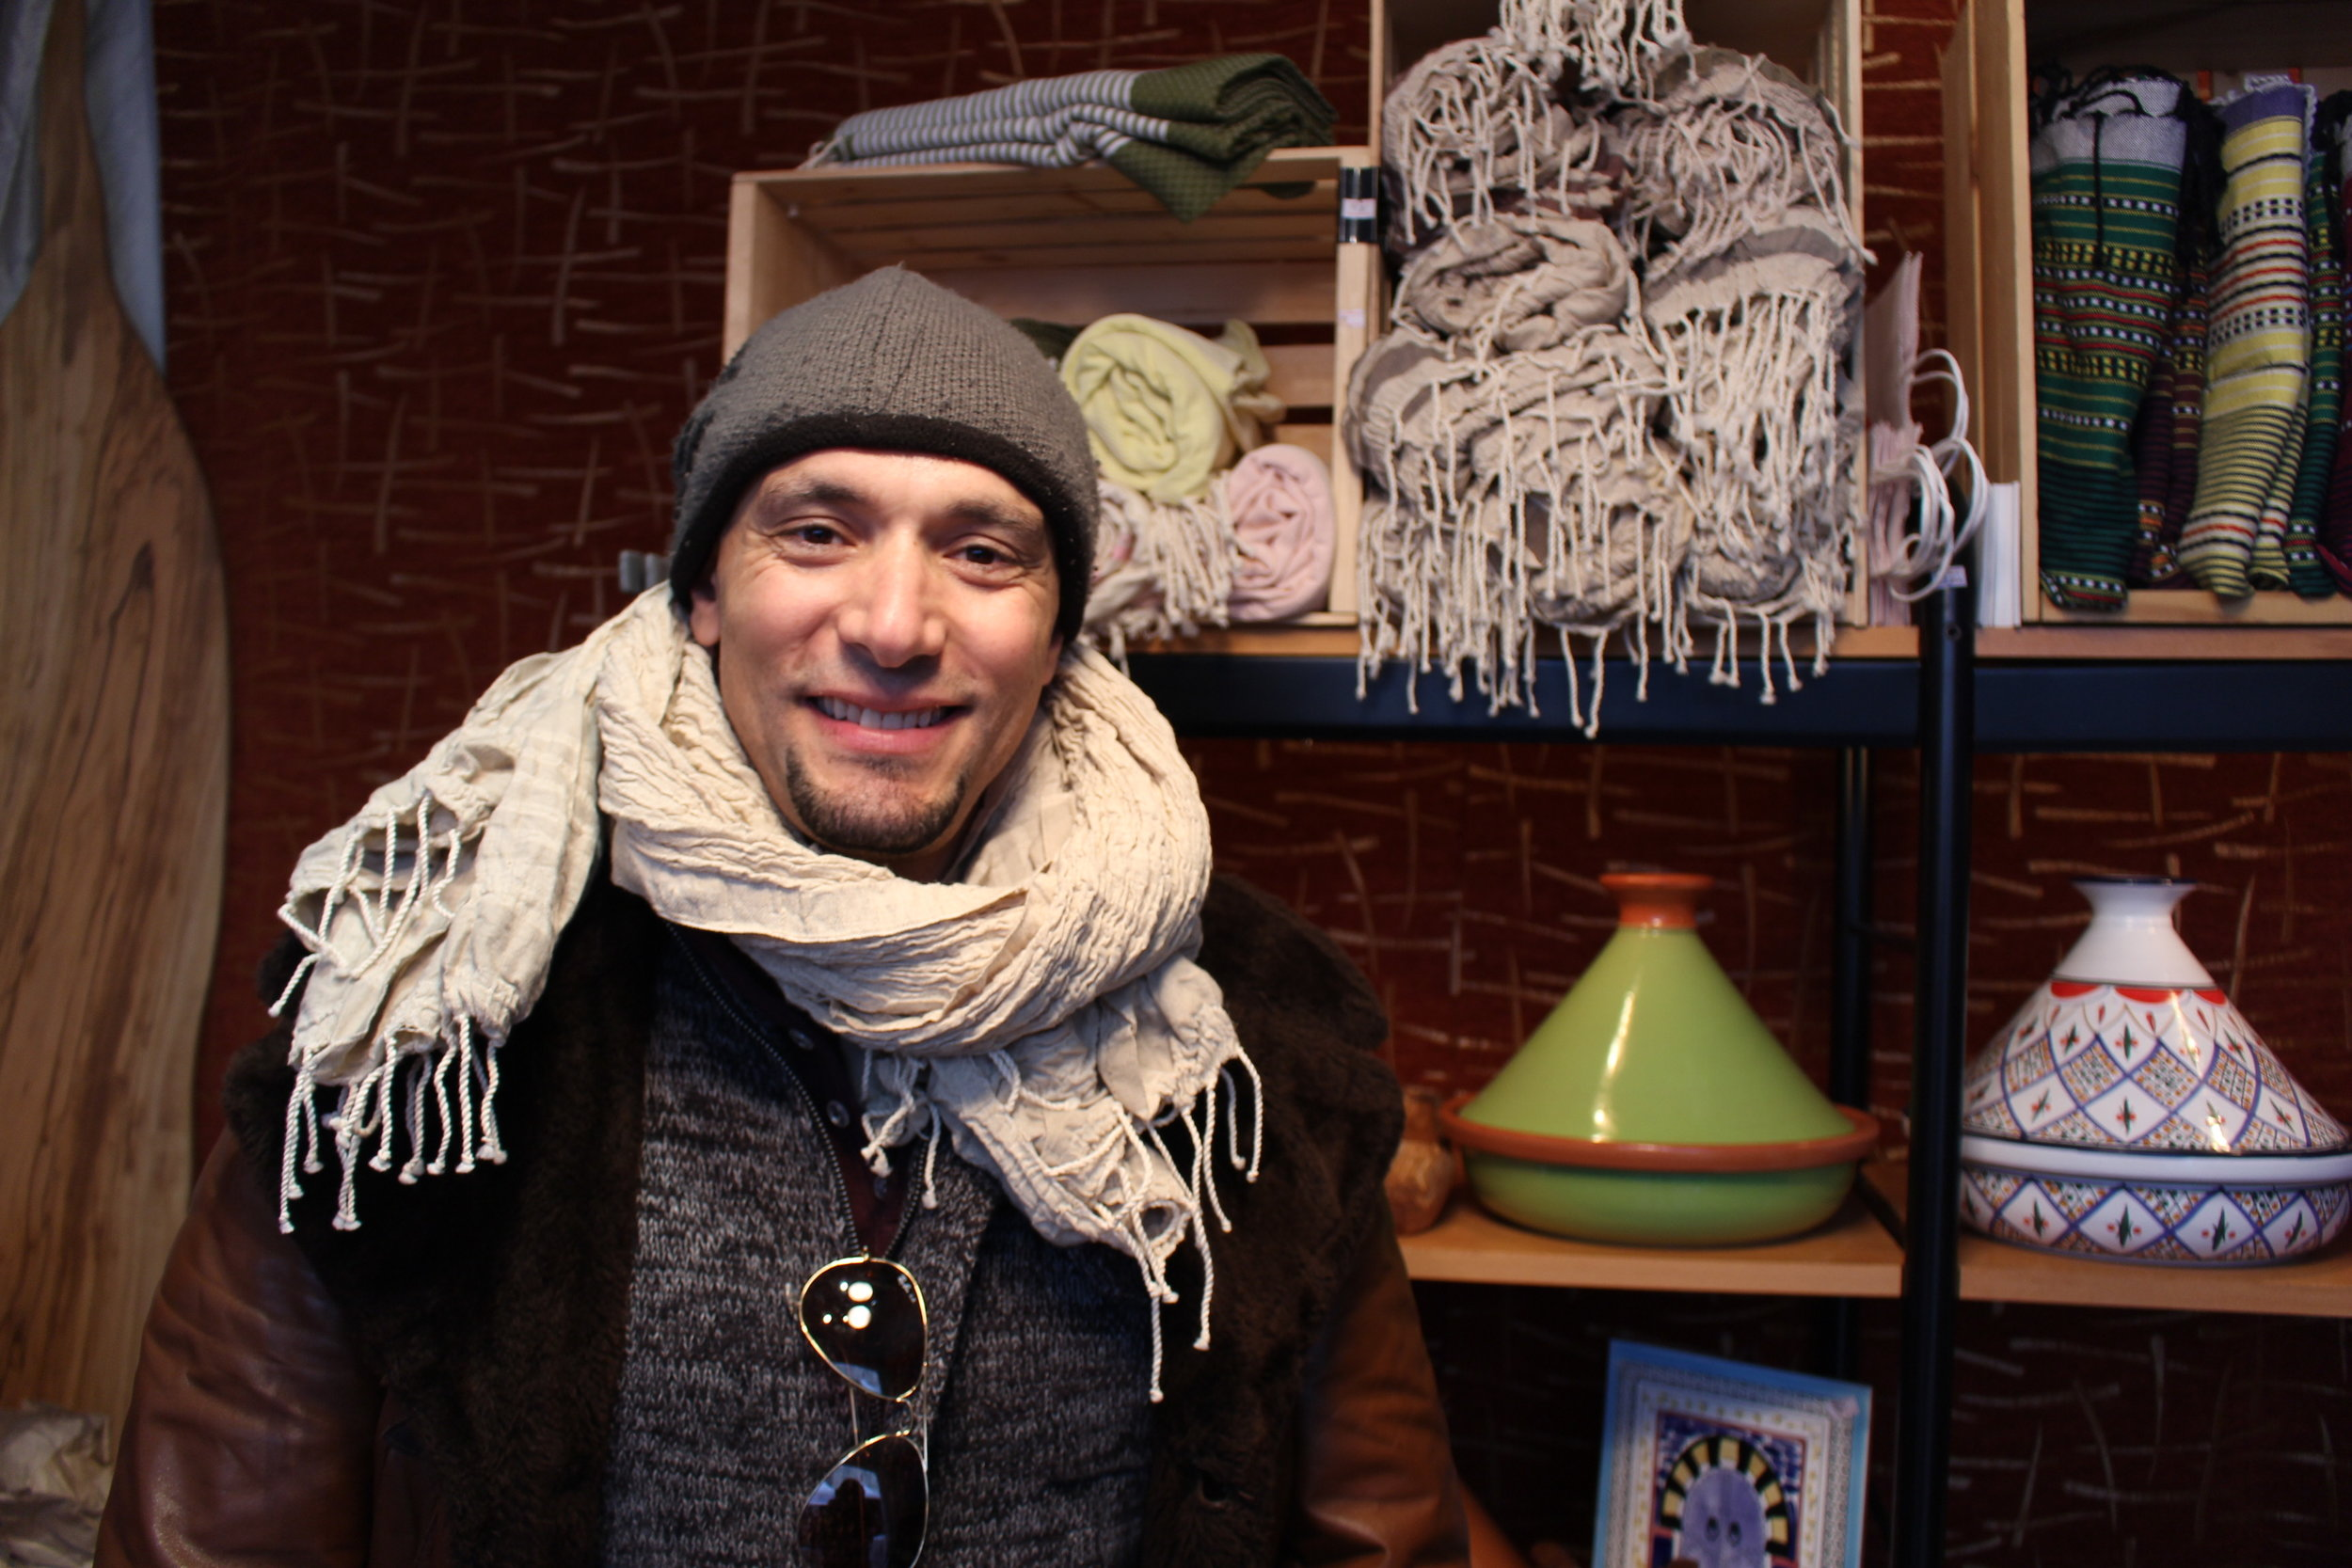 Naj Ajroud in his boutique at the Downtown Holiday Market poses proudly in front of his Tunisian scarves and cooking pots. Photo by Natalie Hutchison.